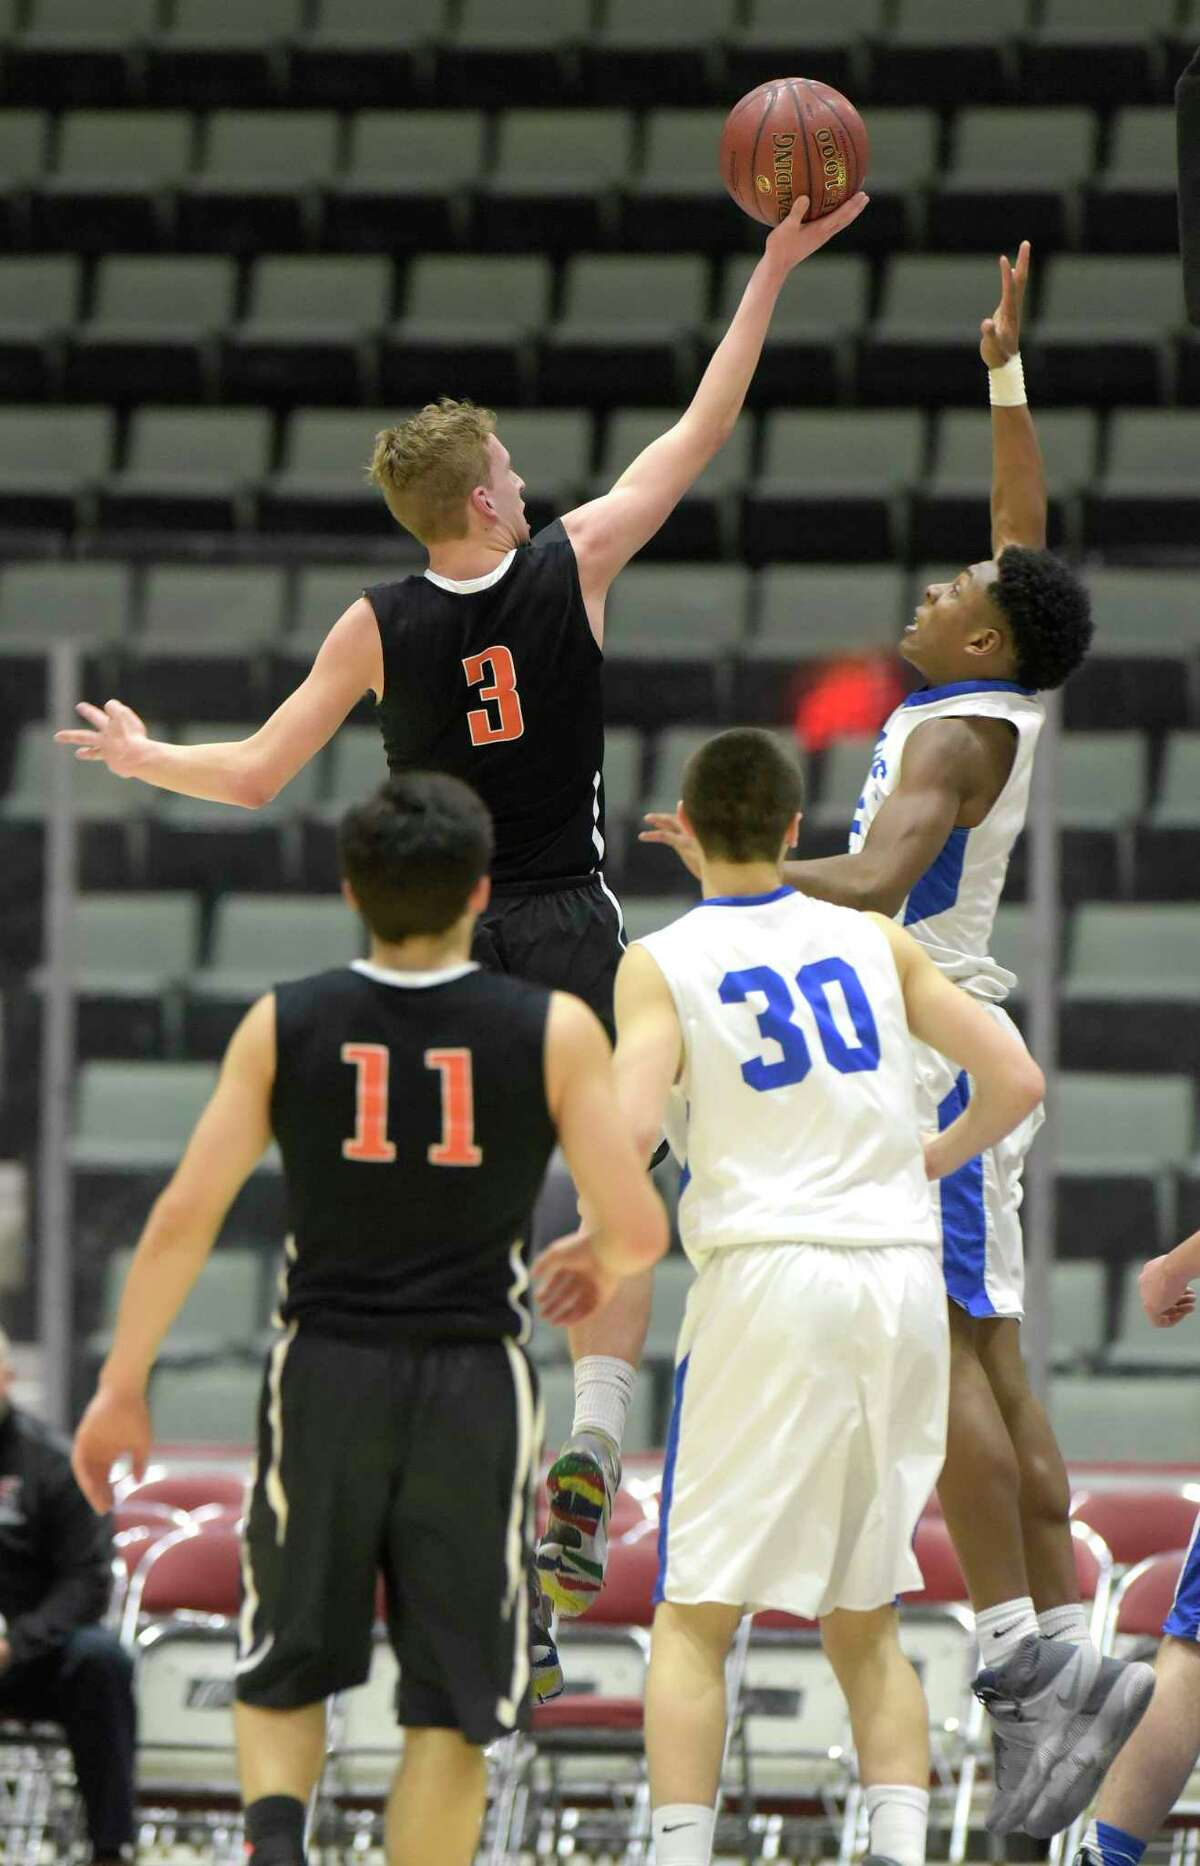 Hayden Thompson of Bethlehem puts up a shot over Jelani Wiggins of La Salle Institute during their Class AA semifinal game at the Glens Falls Civic Center on Tuesday, Feb. 28, 2017, in Glens Falls, N.Y. (Paul Buckowski / Times Union)